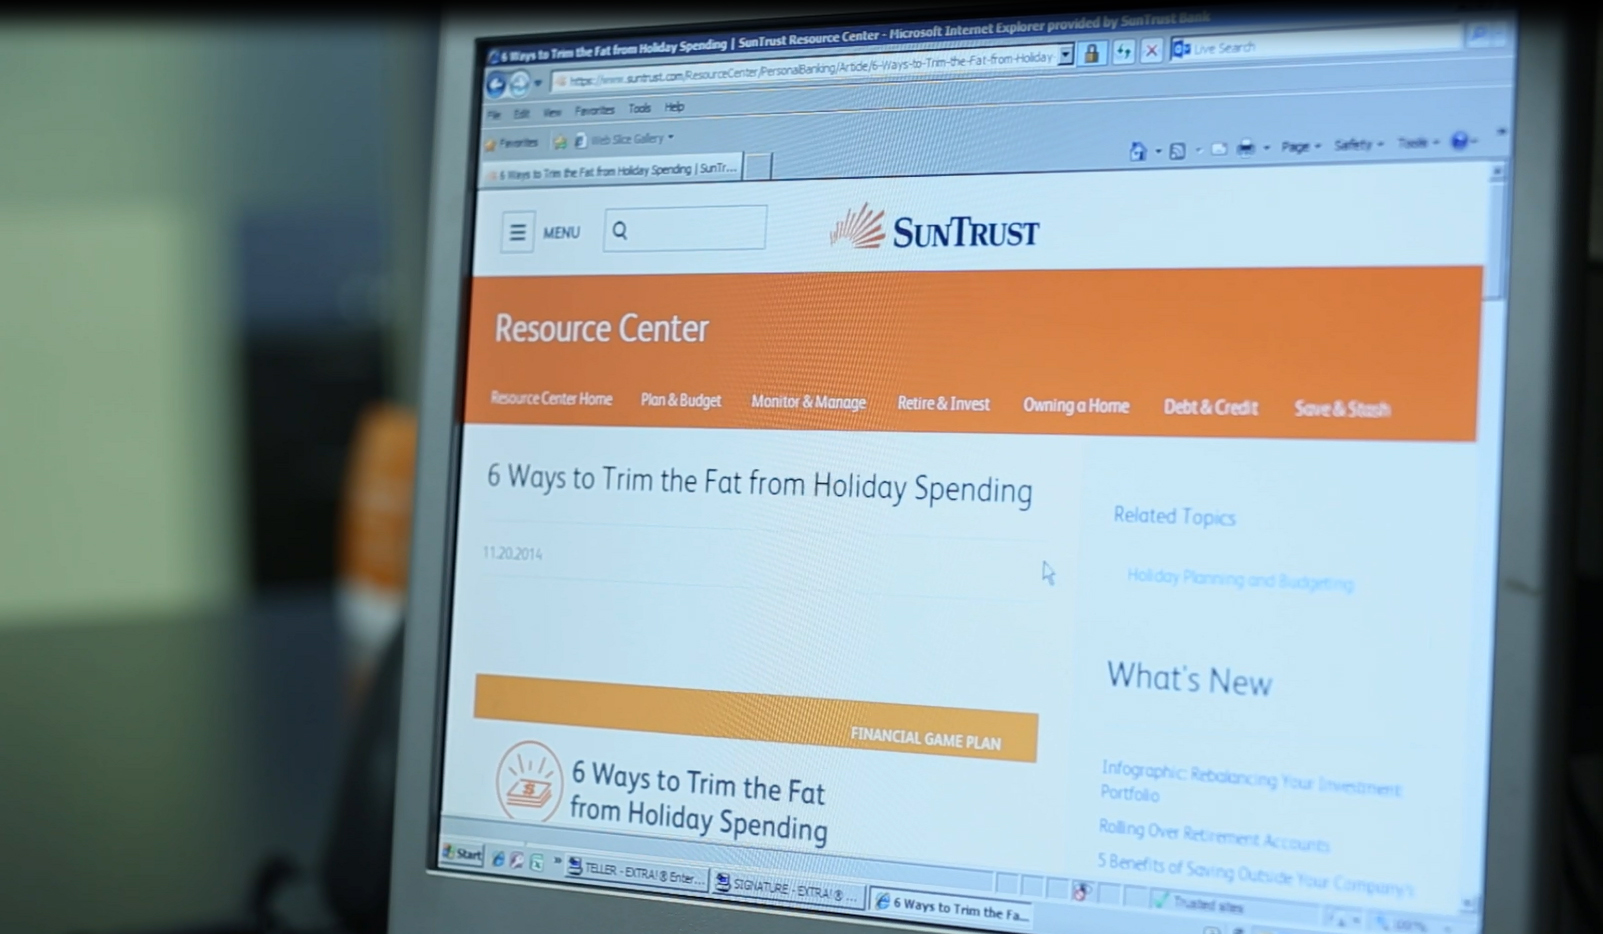 Visit the SunTrust Resource Center.